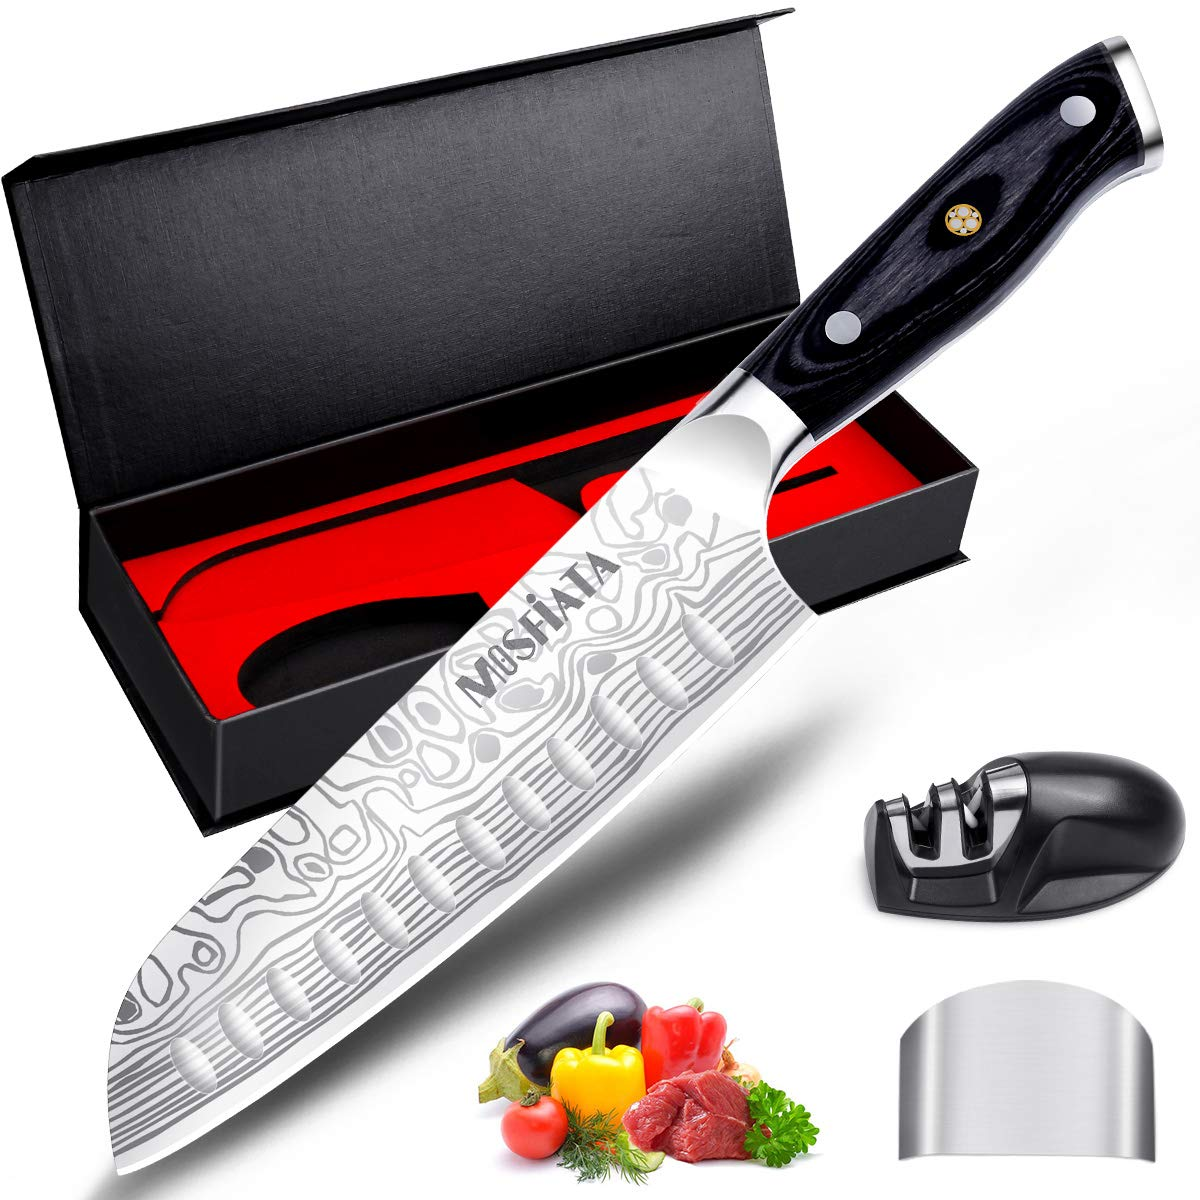 Santoku Knife - MOSFiATA 7'' Super Sharp Professional Kitchen Cooking Knife with Finger Guard and Knife Sharpener, German High Carbon Stainless Steel 4116 with Micarta Handle and Gift Box by MOSFiATA